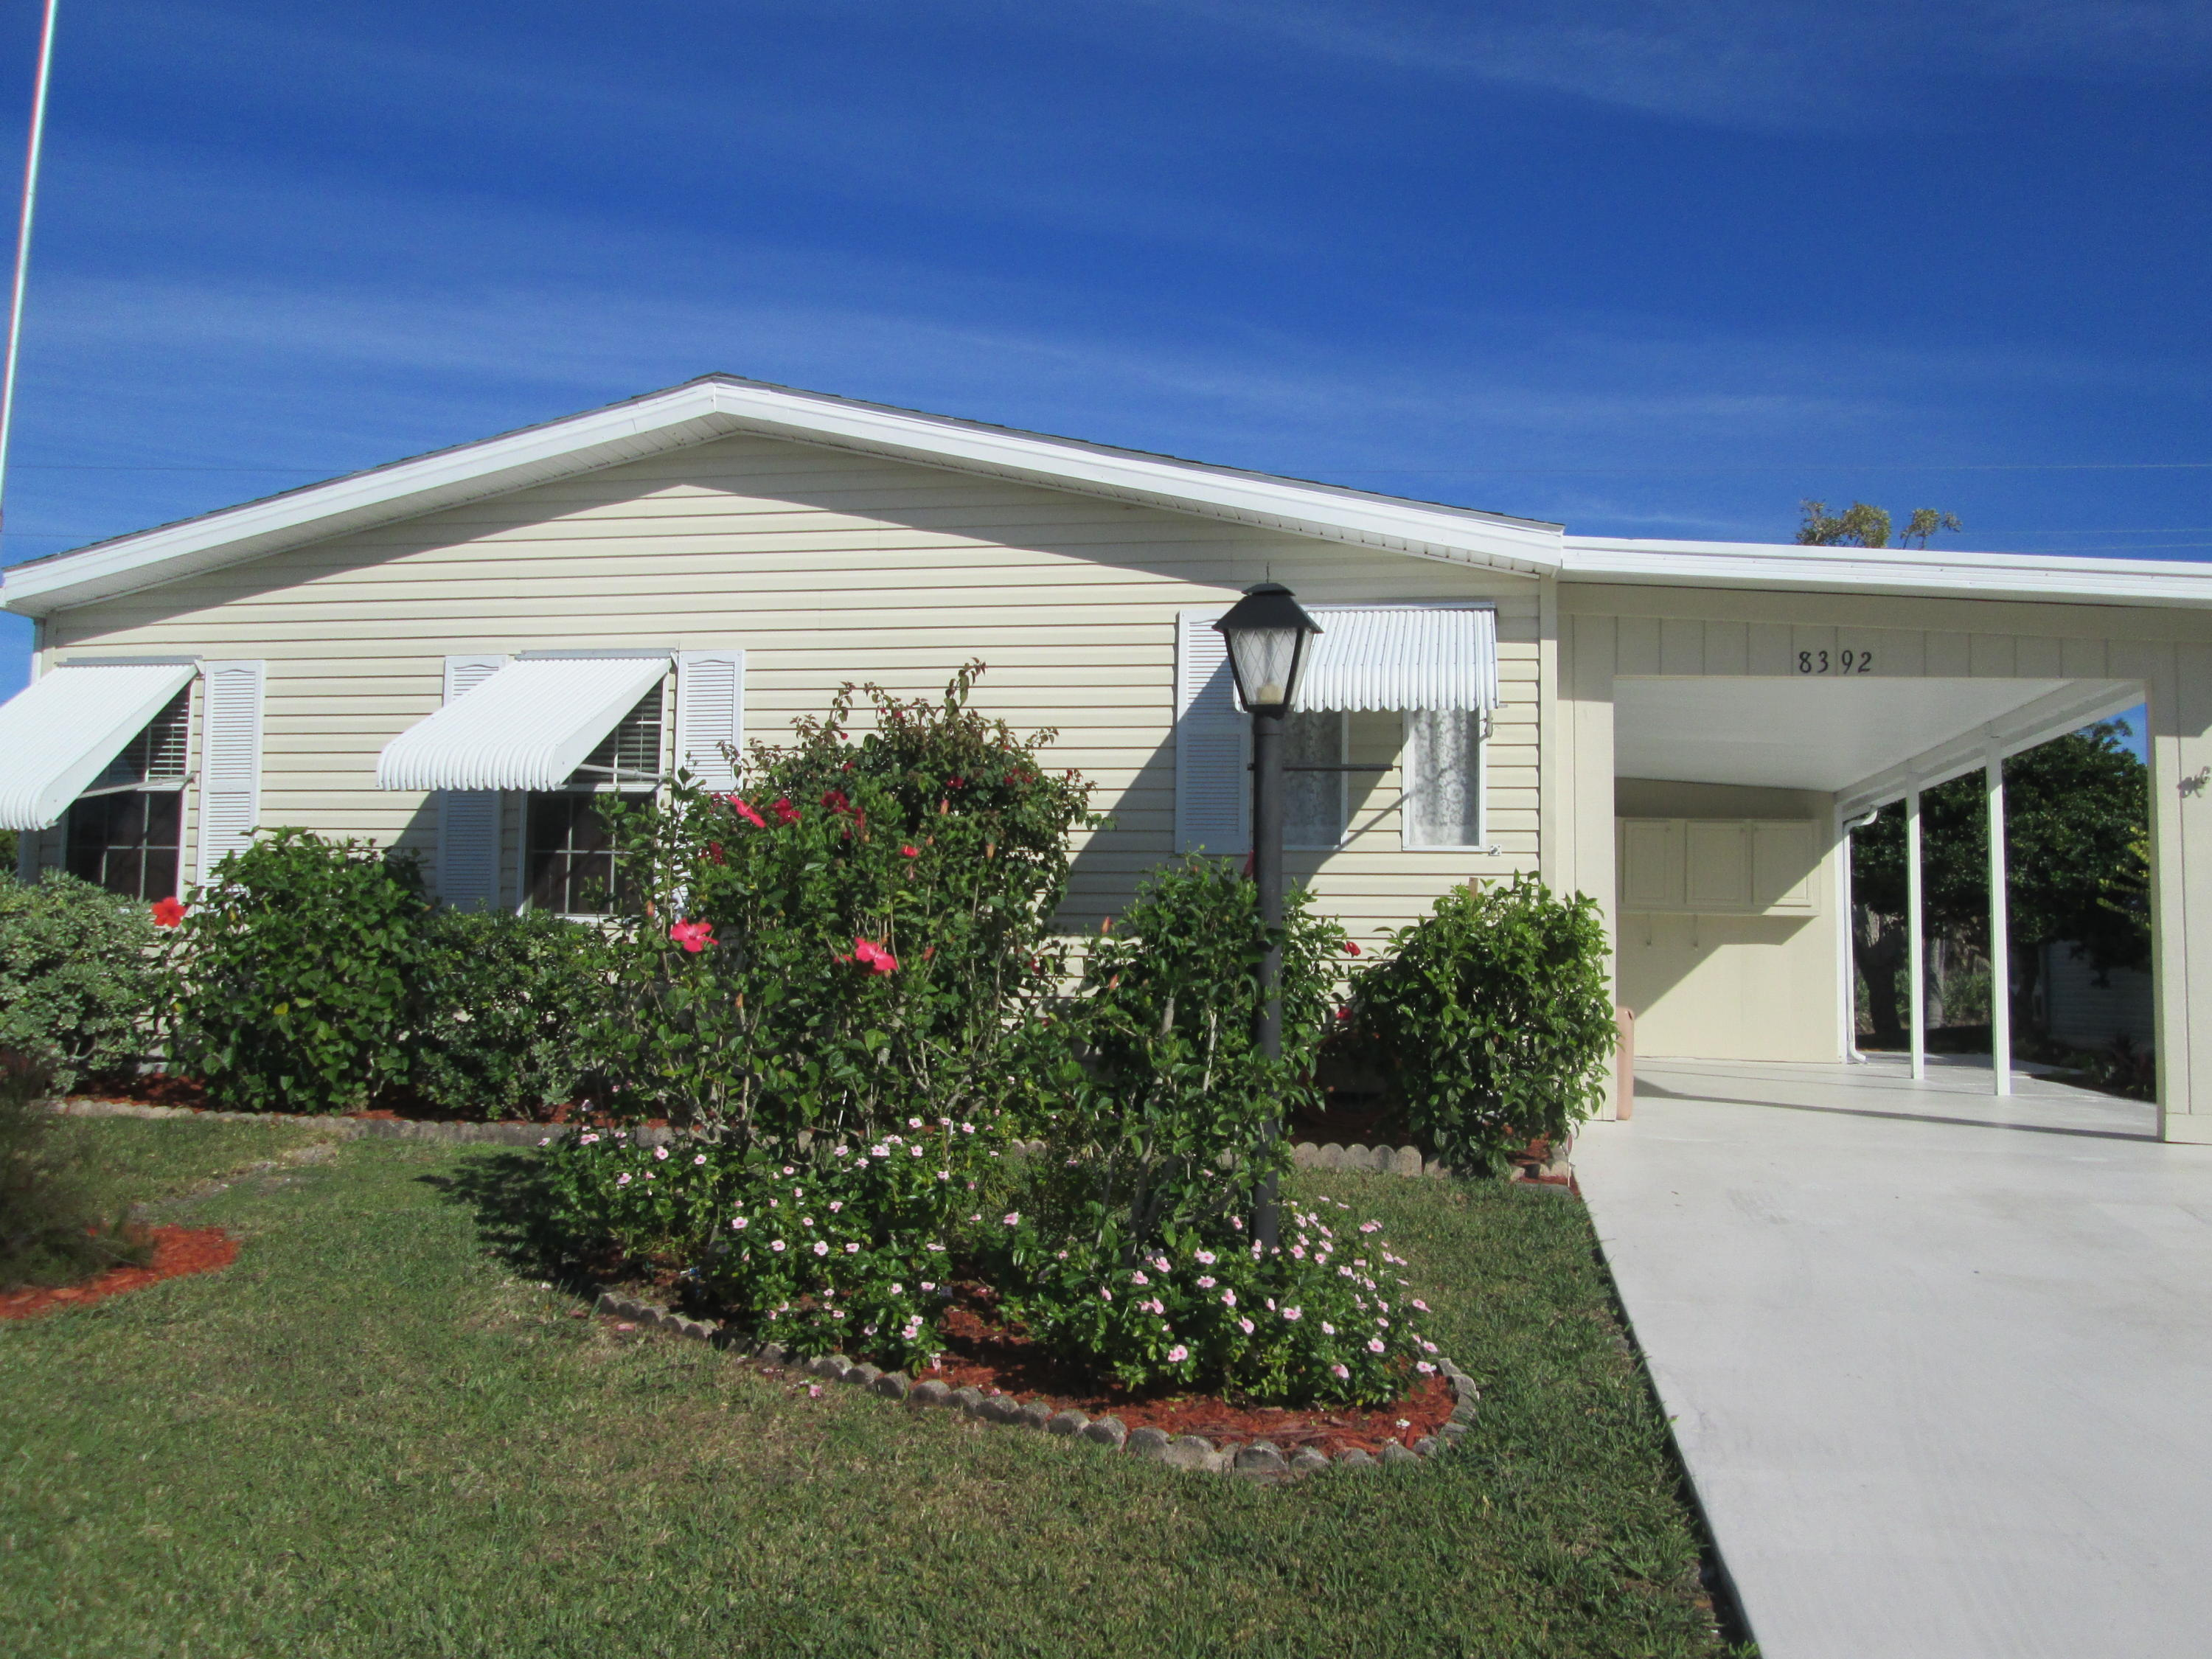 8392 Gallberry Circle, Port Saint Lucie, Florida 34952, 3 Bedrooms Bedrooms, ,2 BathroomsBathrooms,Mobile/manufactured,For Sale,Savanna Club,Gallberry,RX-10502881